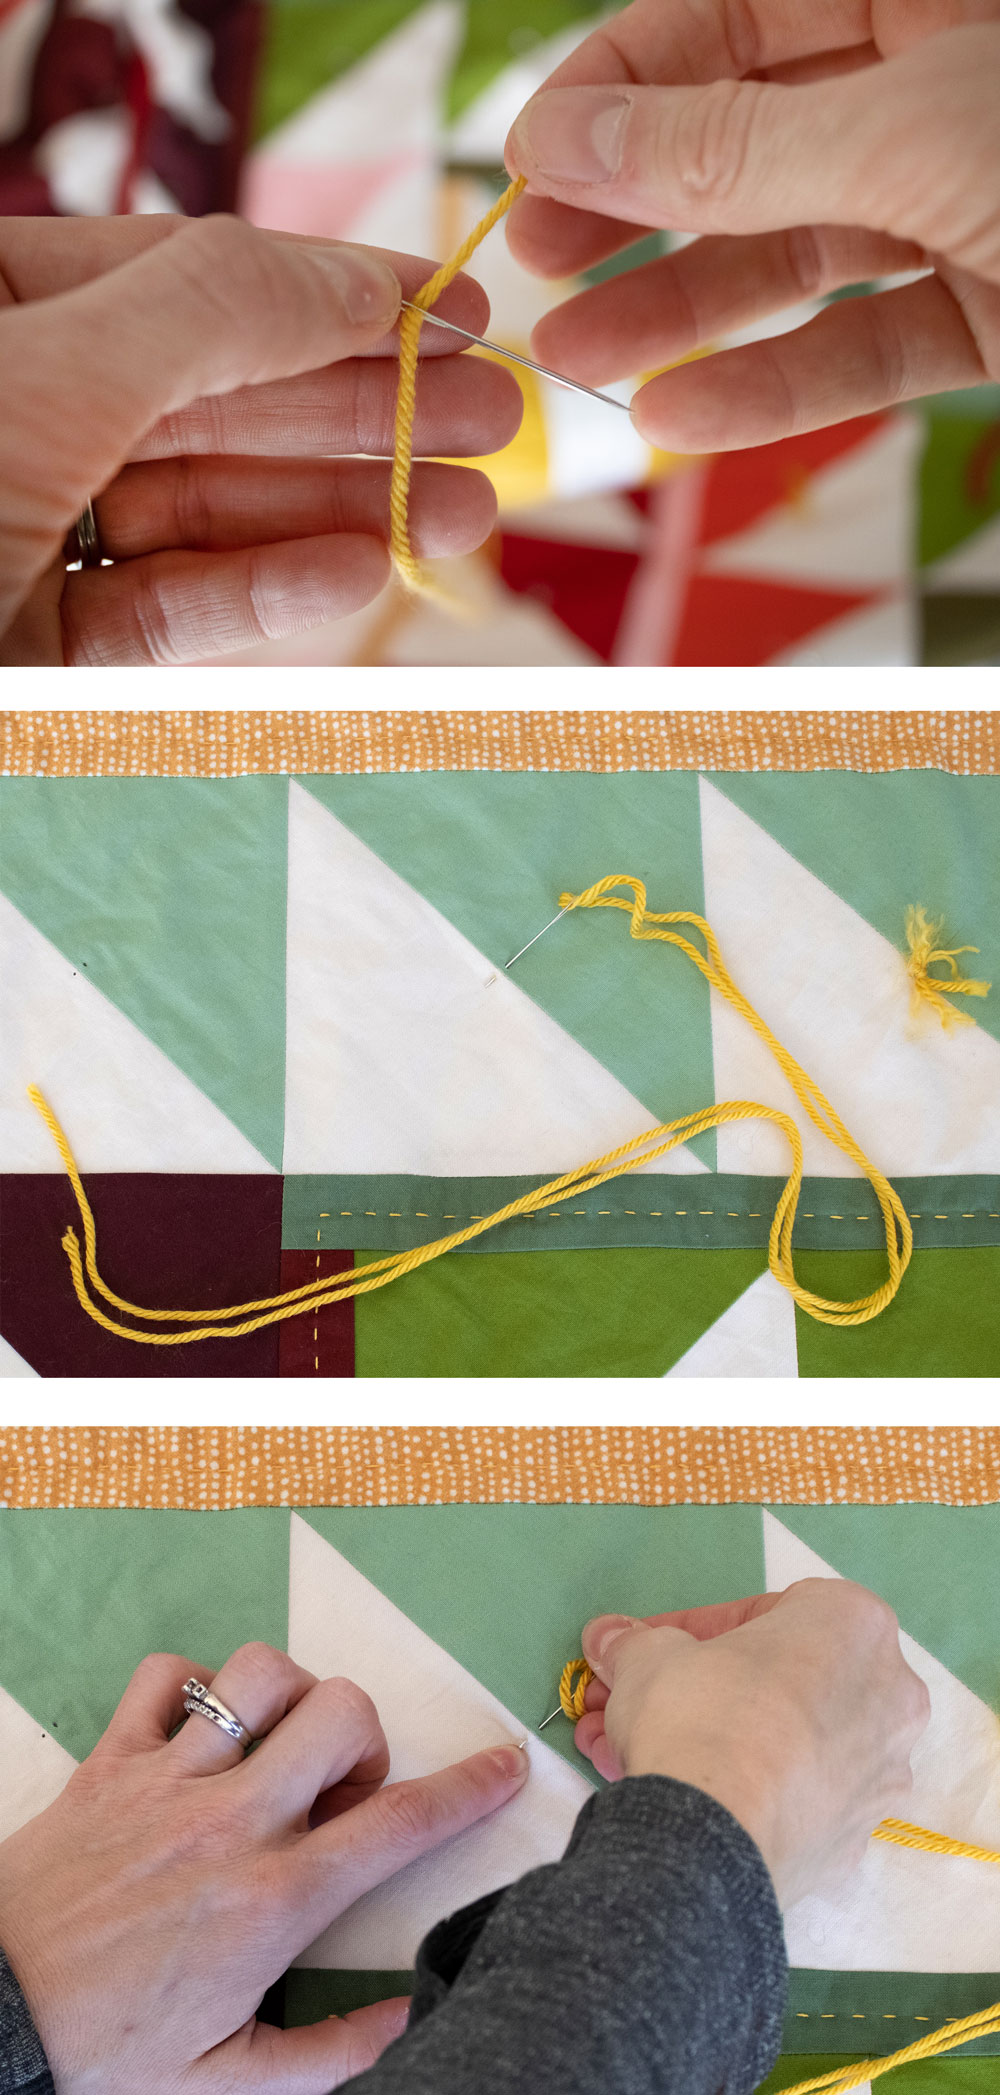 This quilt tying tutorial shows how to tie a quilt with yarn or embroidery thread. Quilt ties is an easy and fast way to finish a quilt. suzyquilts.com #quilting #quiltingtutorial